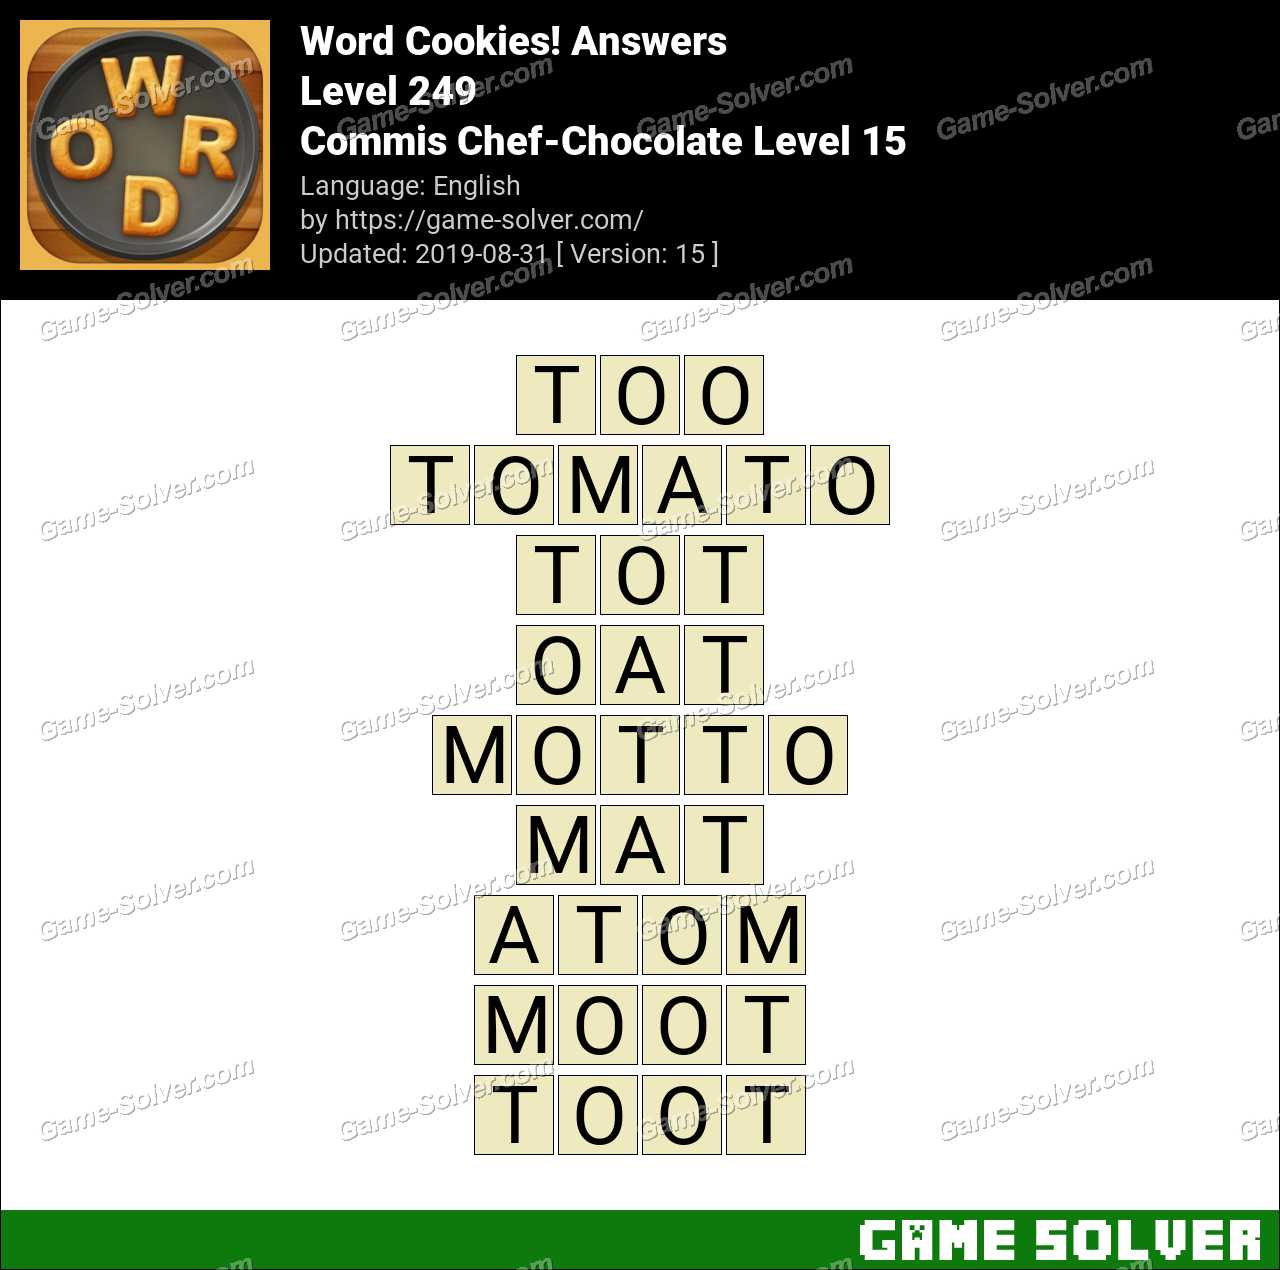 Word Cookies Commis Chef-Chocolate Level 15 Answers